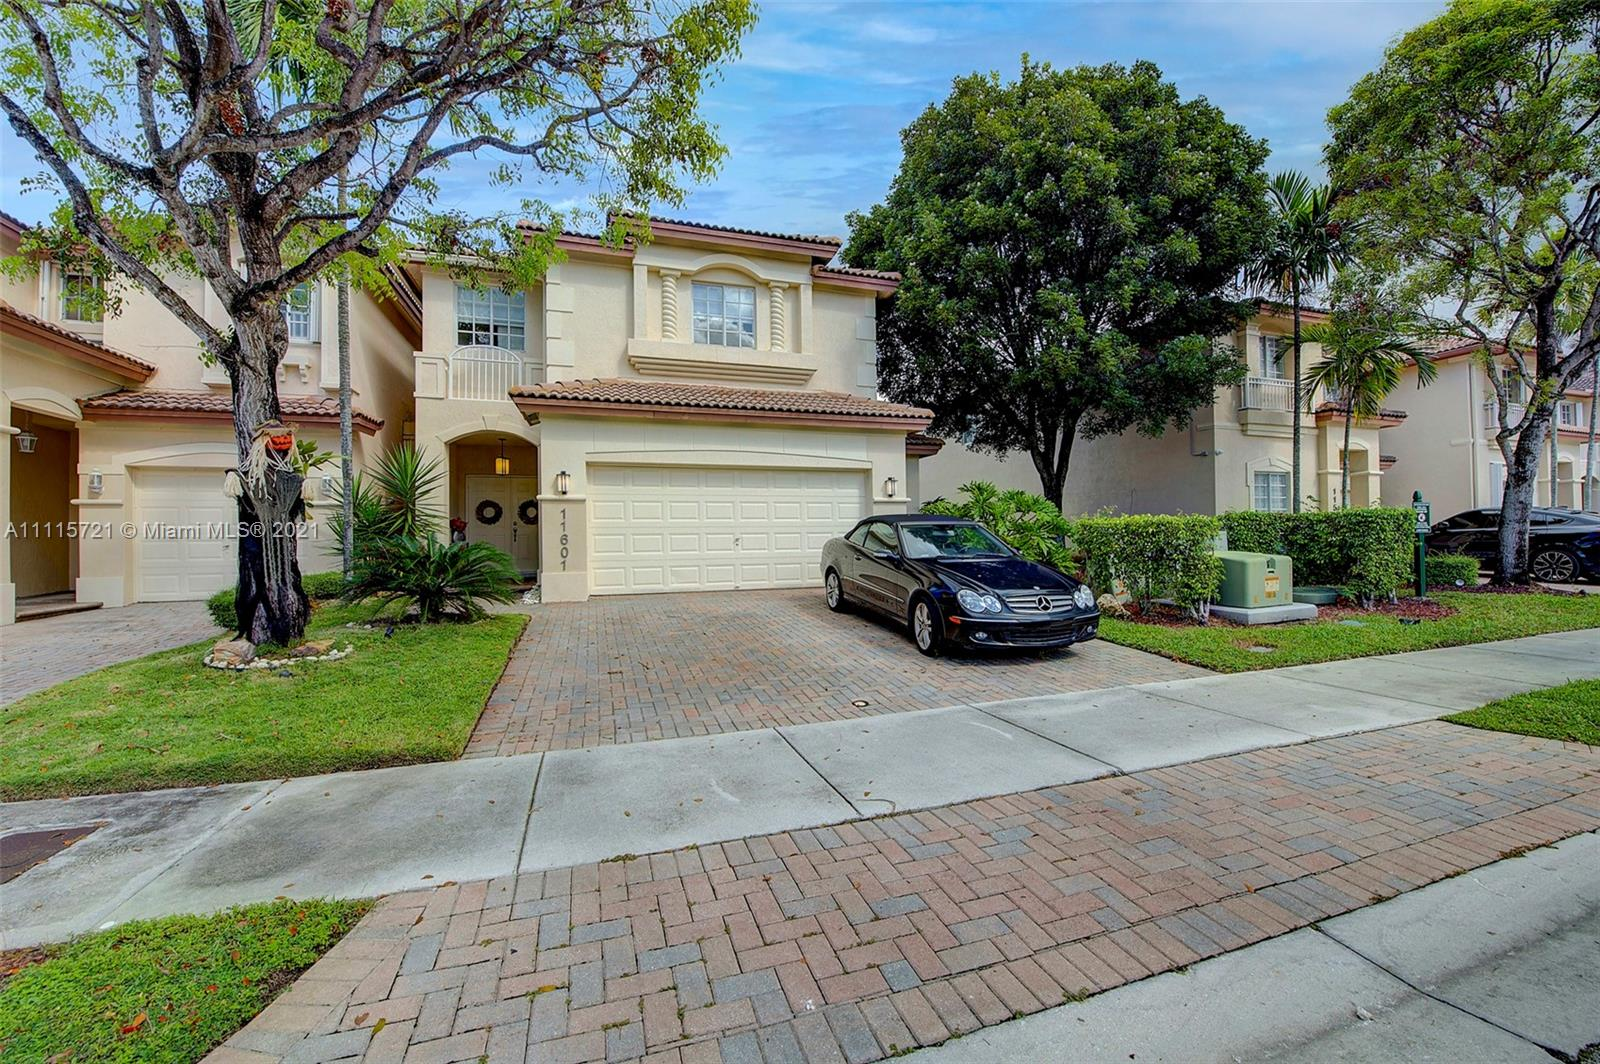 Single Family Home,For Sale,11601 NW 68th Ter, Doral, Florida 33178,Brickell,realty,broker,condos near me